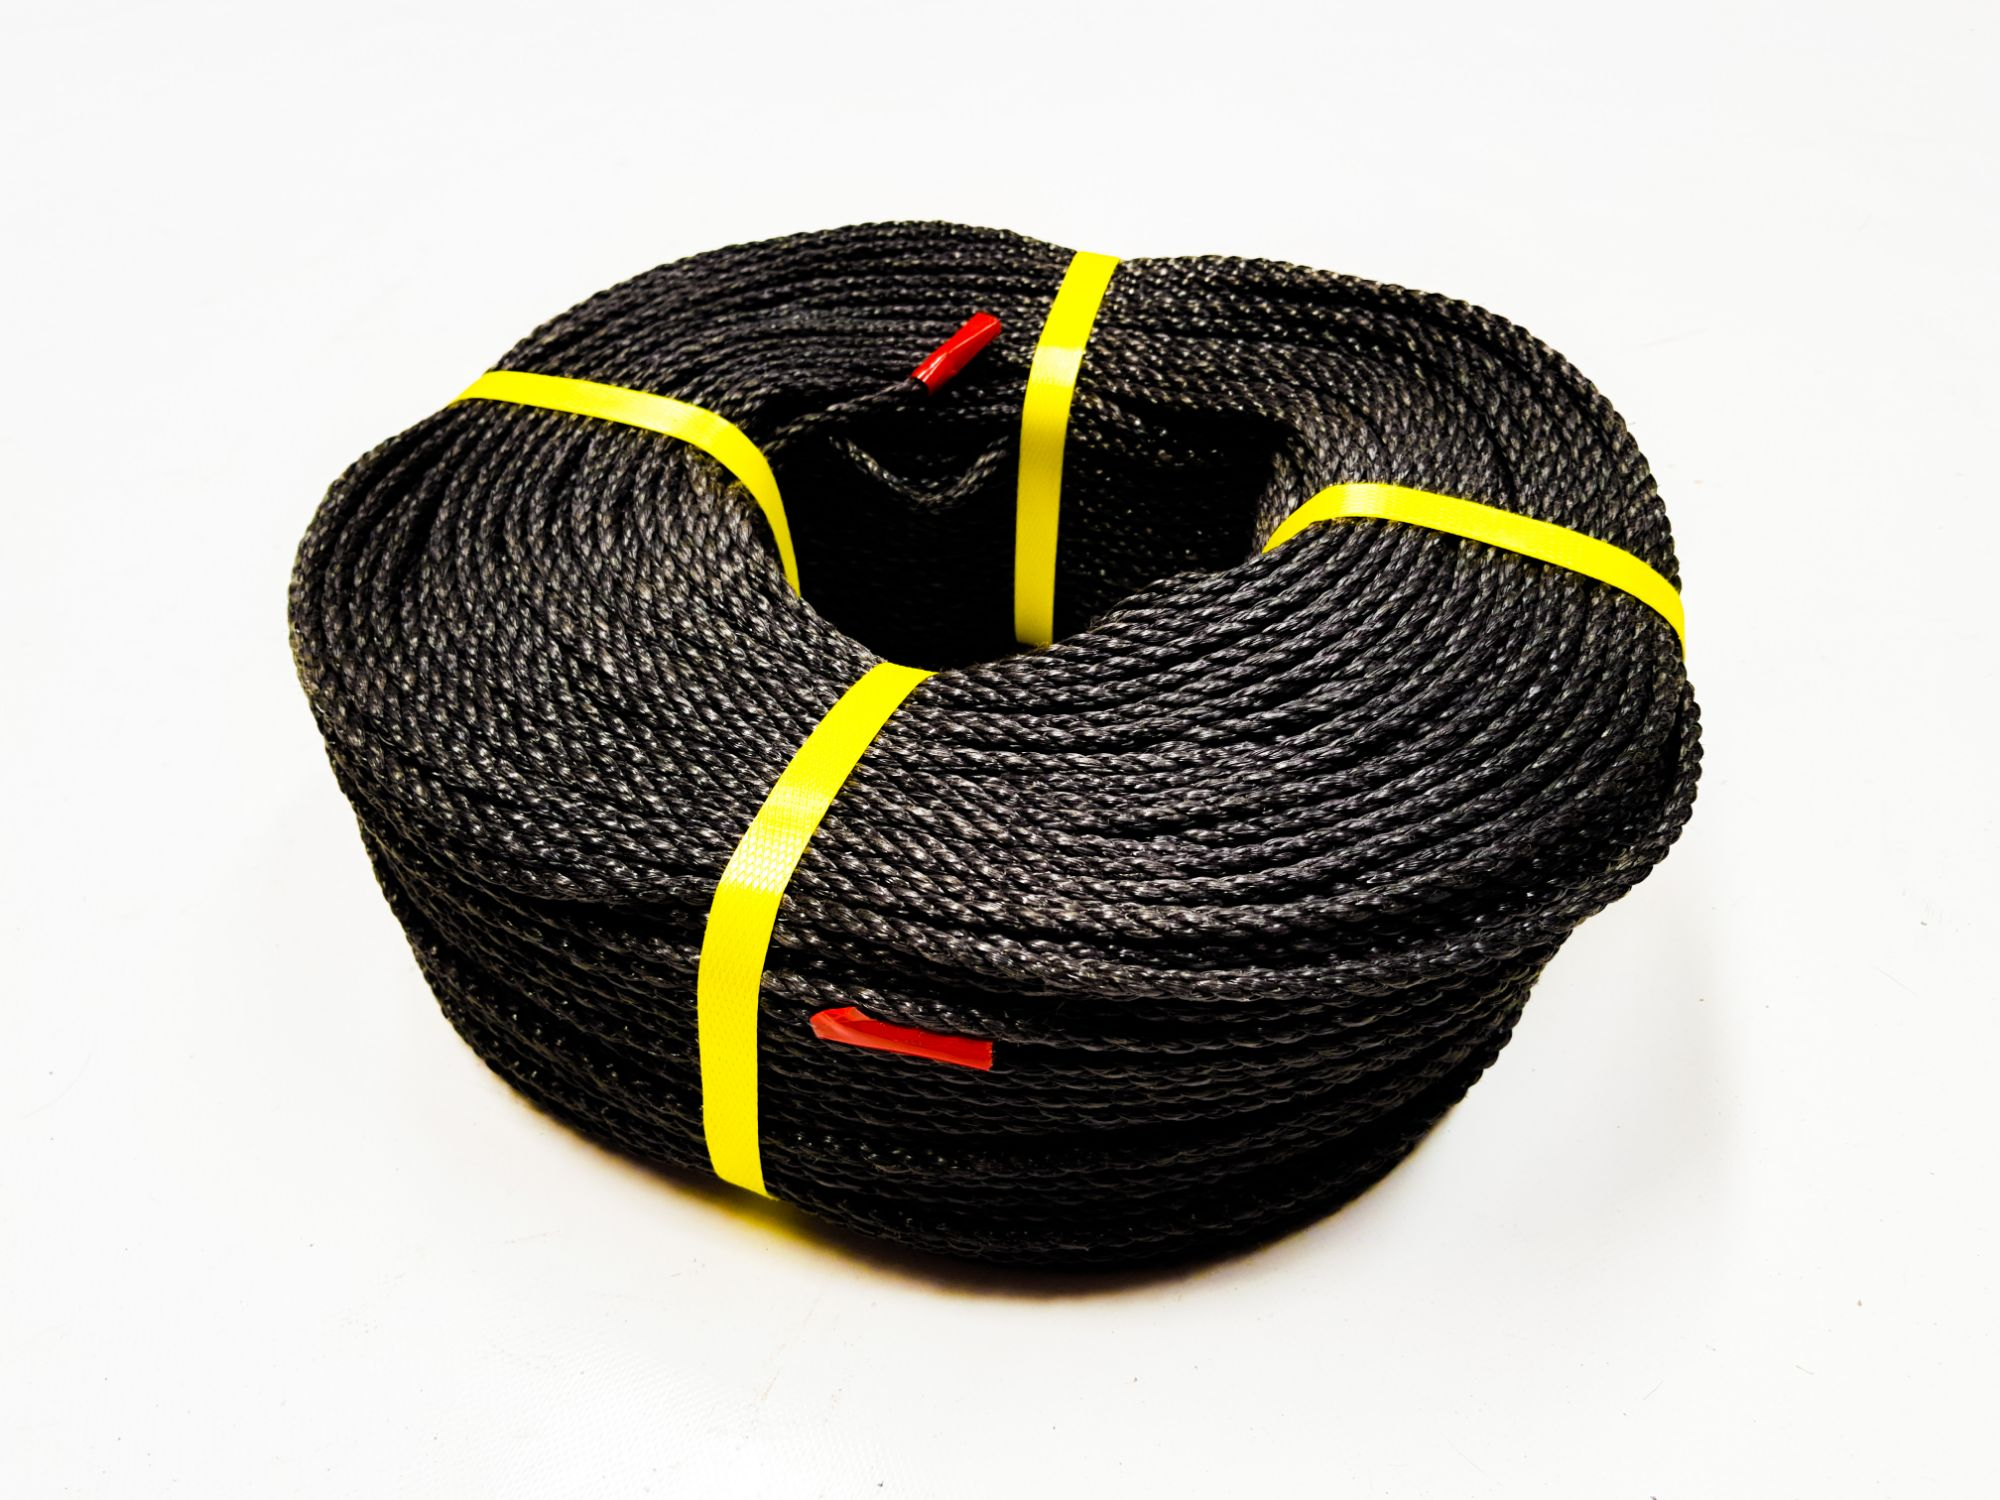 Polypropylene Rope For Sale in Perth, Western Australia